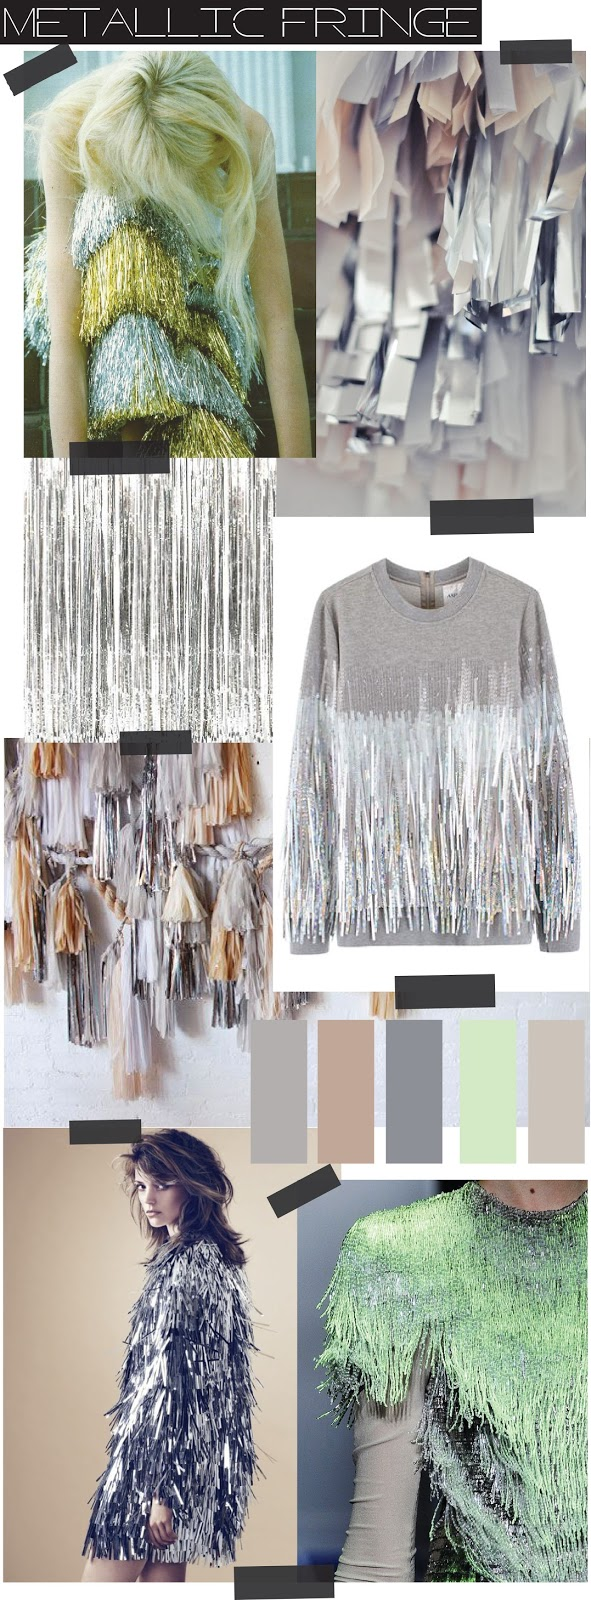 TRENDSPIRATION // METALLIC FRINGE